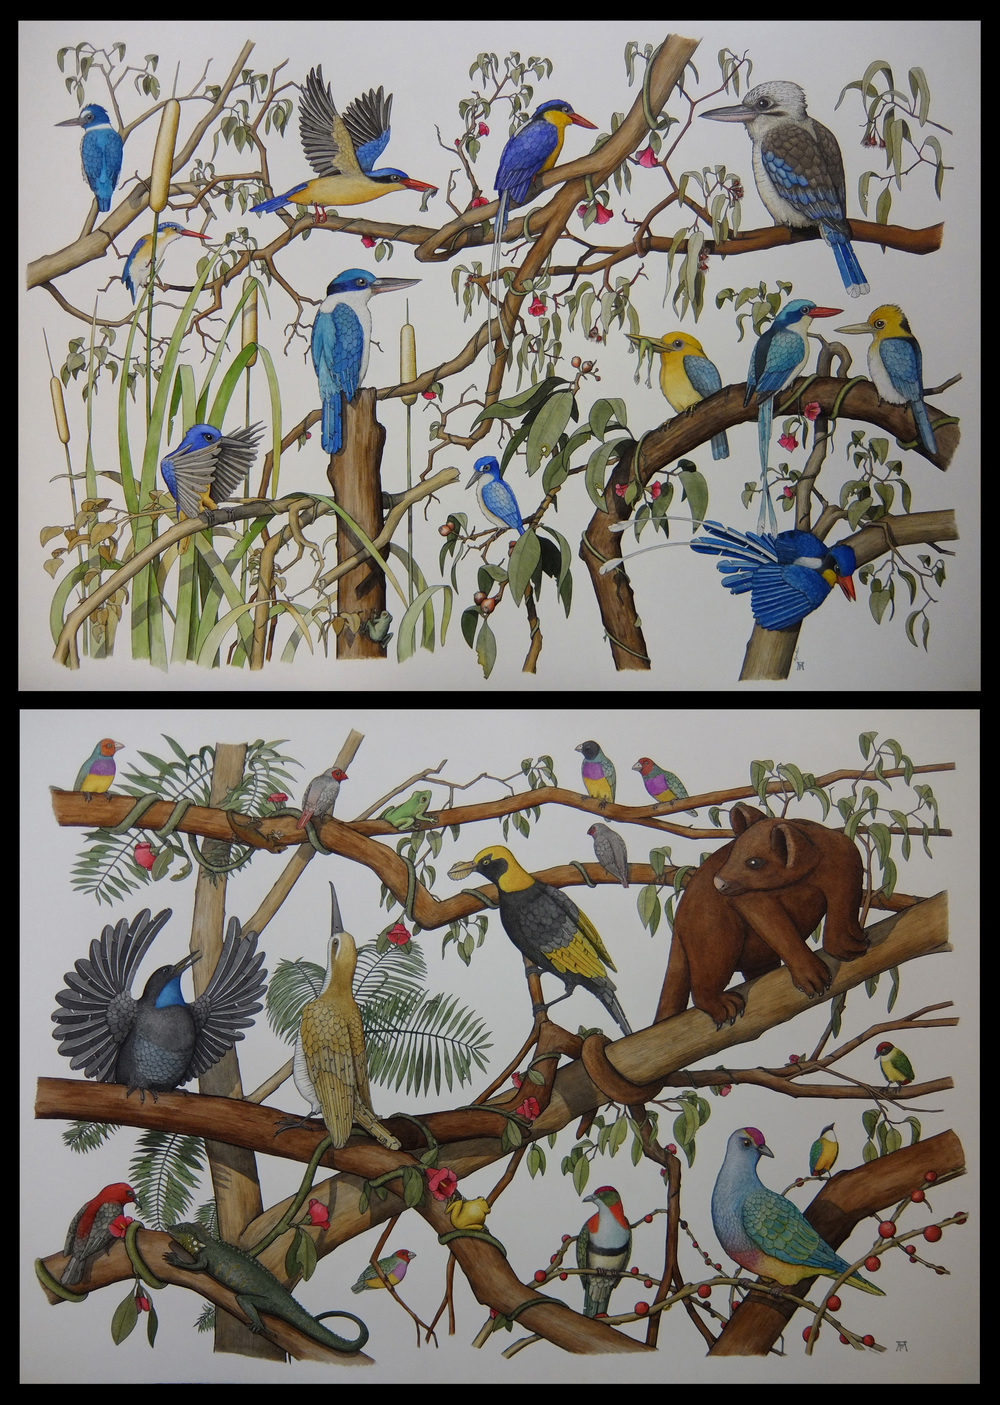 'Kingfishers of Northern Australia' (Ink Pen and Watercolour on Paper) Angus Fisher 'The Daintree Rainforest' (Ink Pen and Watercolour on Paper) Angus Fisher